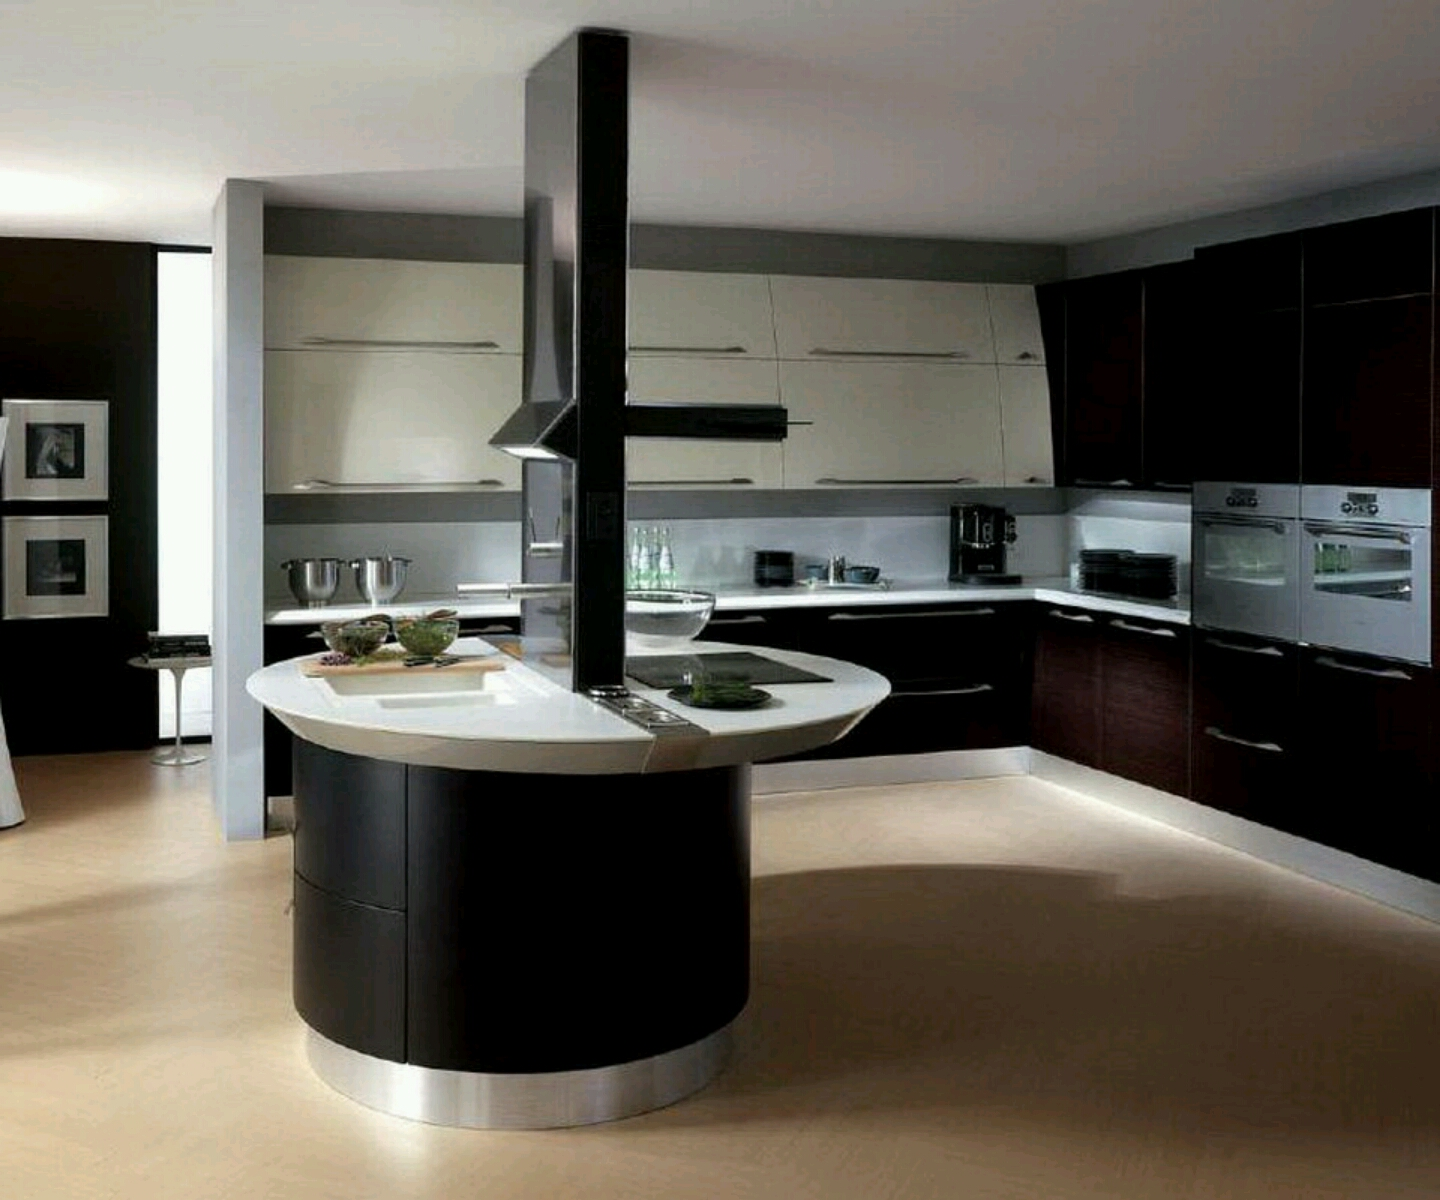 Modern kitchen cabinet design - Images of modern kitchen designs ...